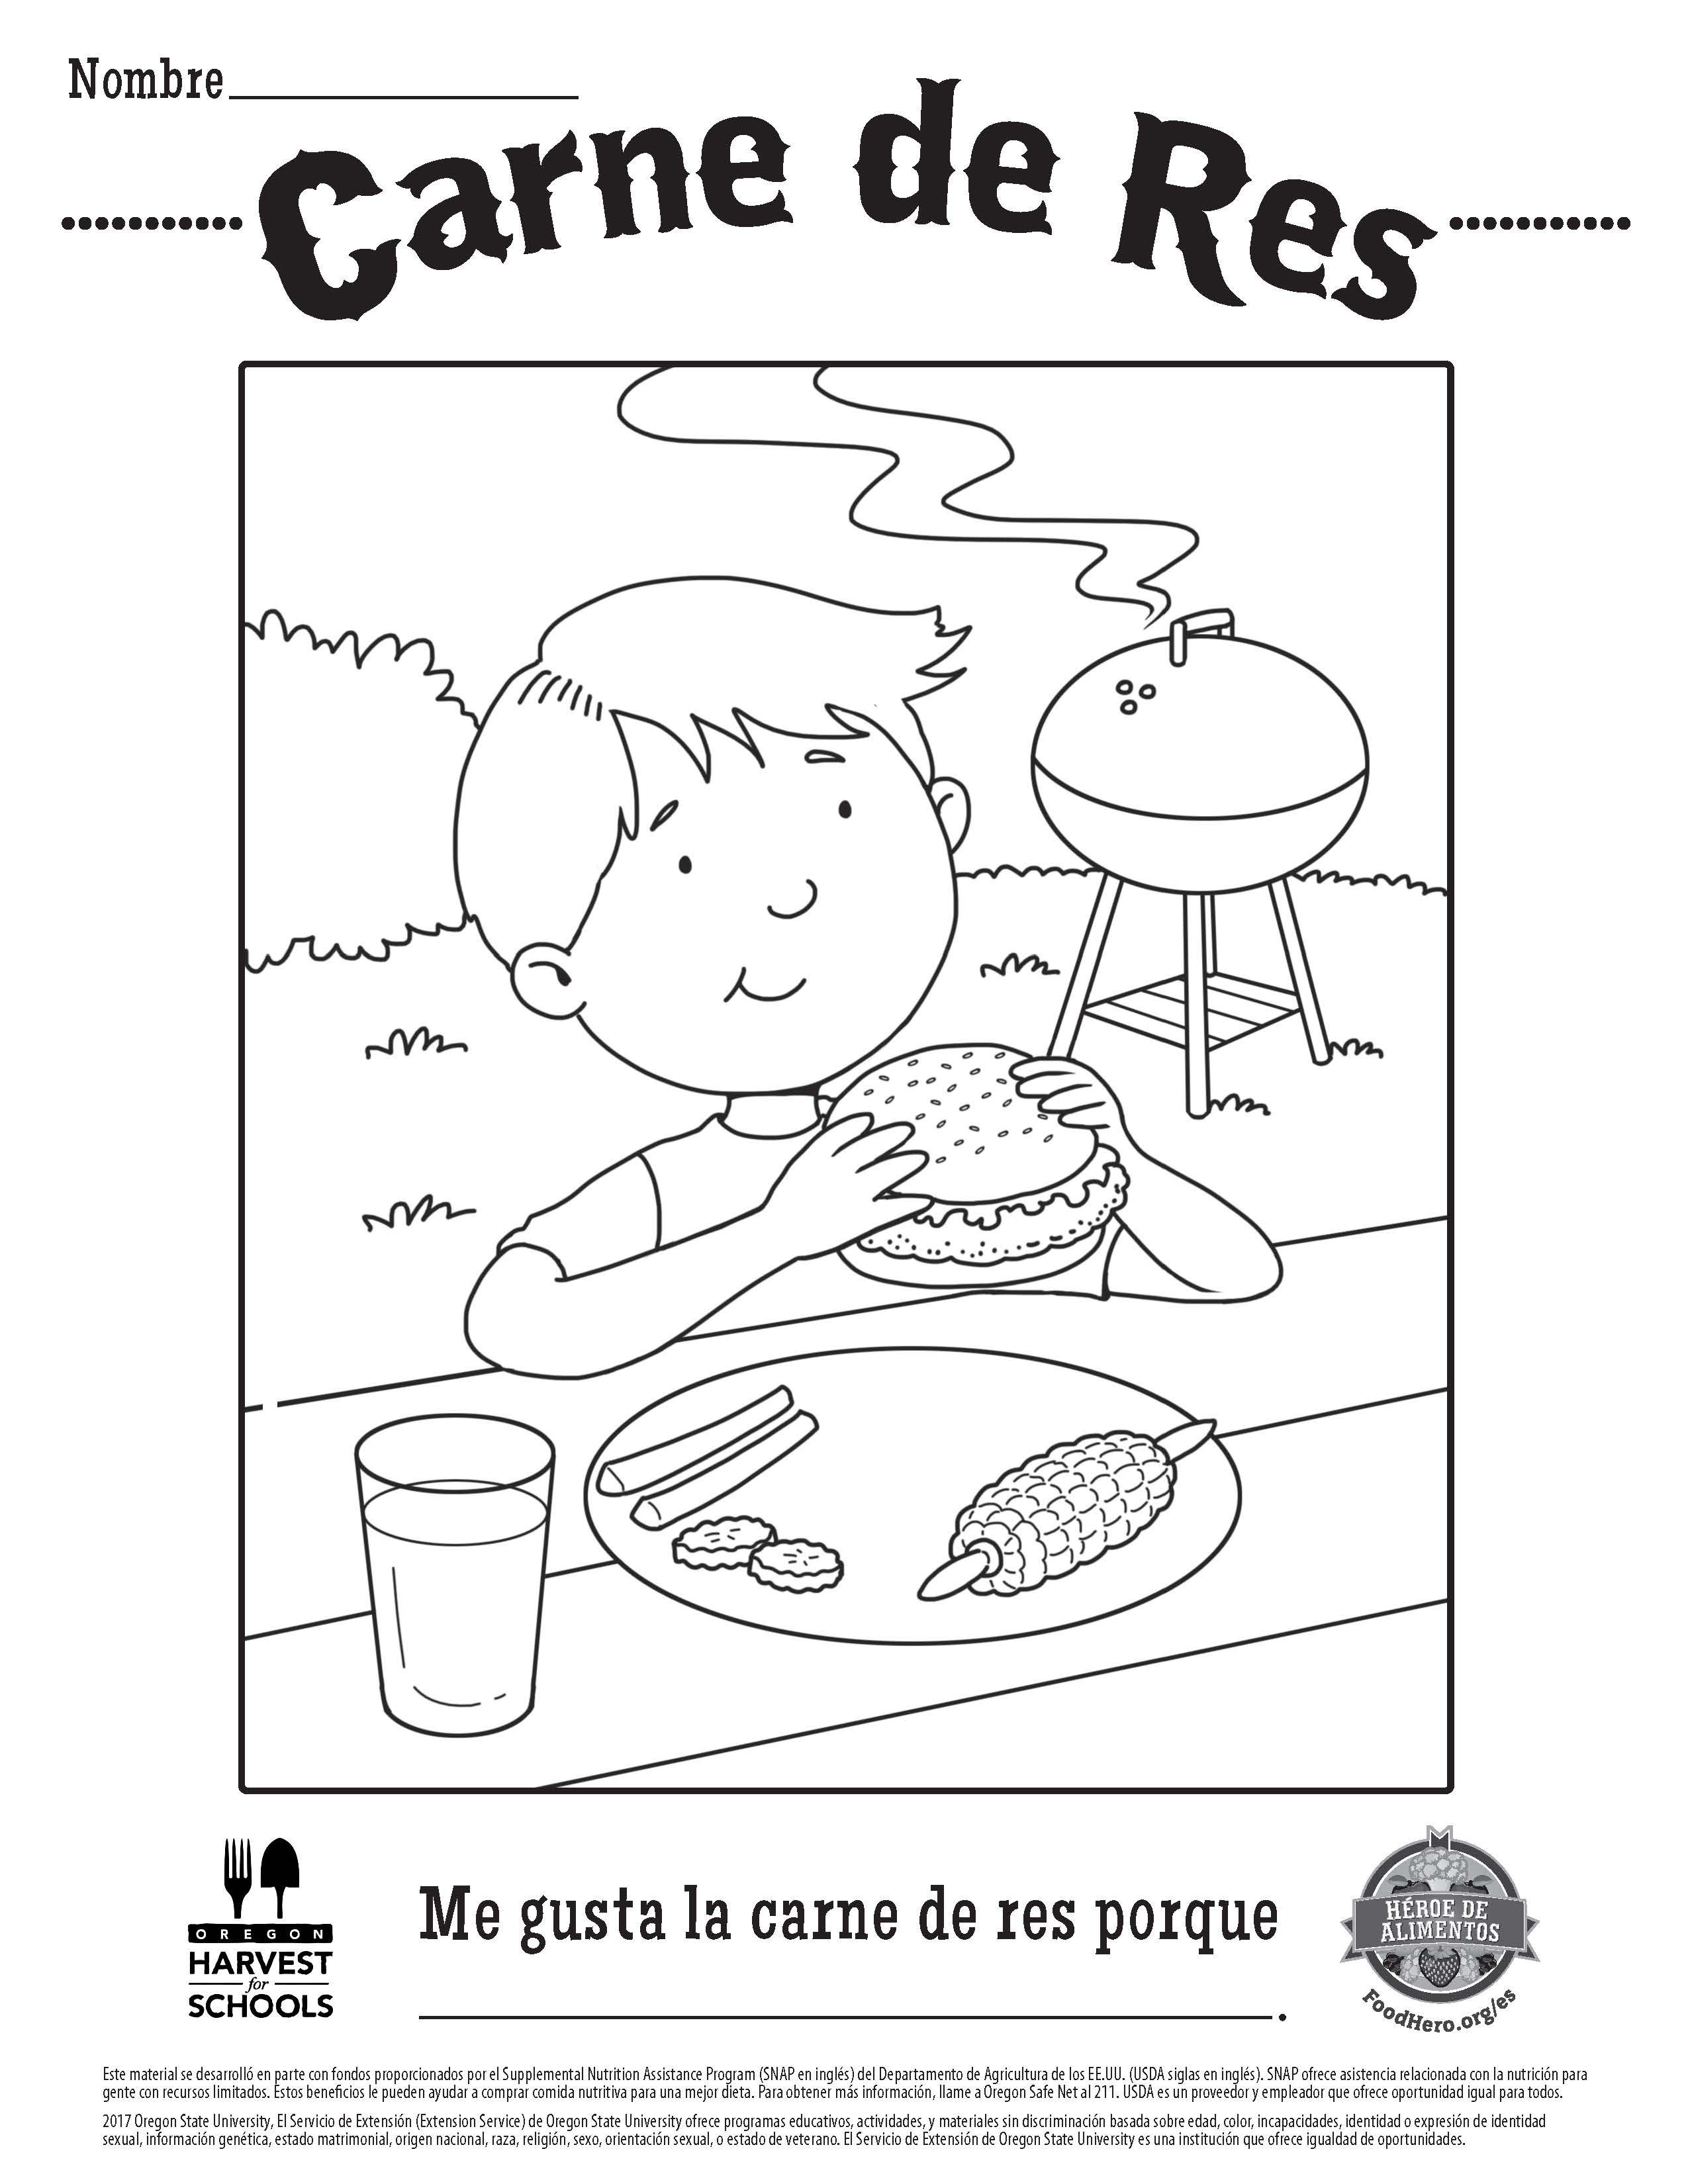 Food Hero Free Printable Coloring Sheet in Spanish about Beef